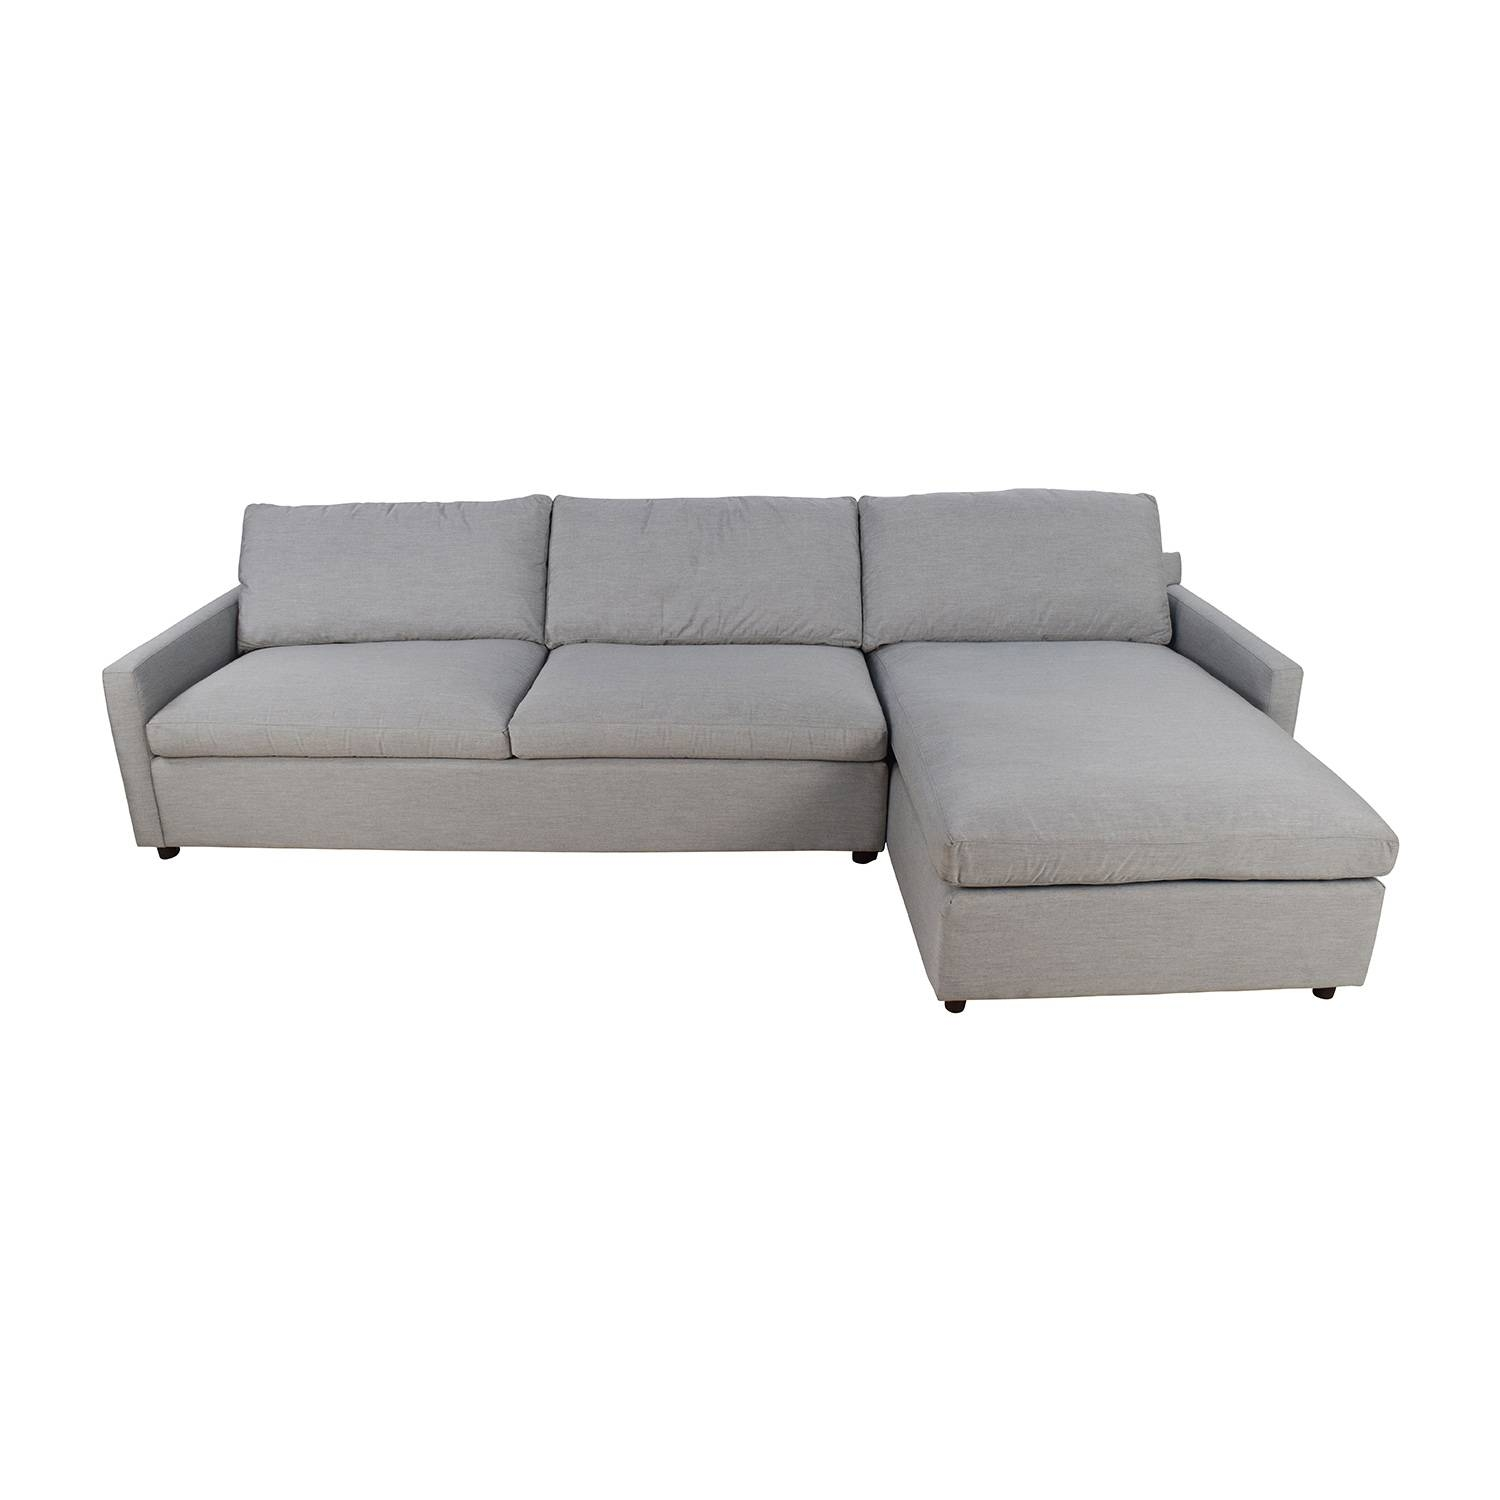 44% Off – Macy's Macy's Modern Concepts Charcoal Gray Corduroy Intended For Cobble Hill Sofas (View 1 of 15)